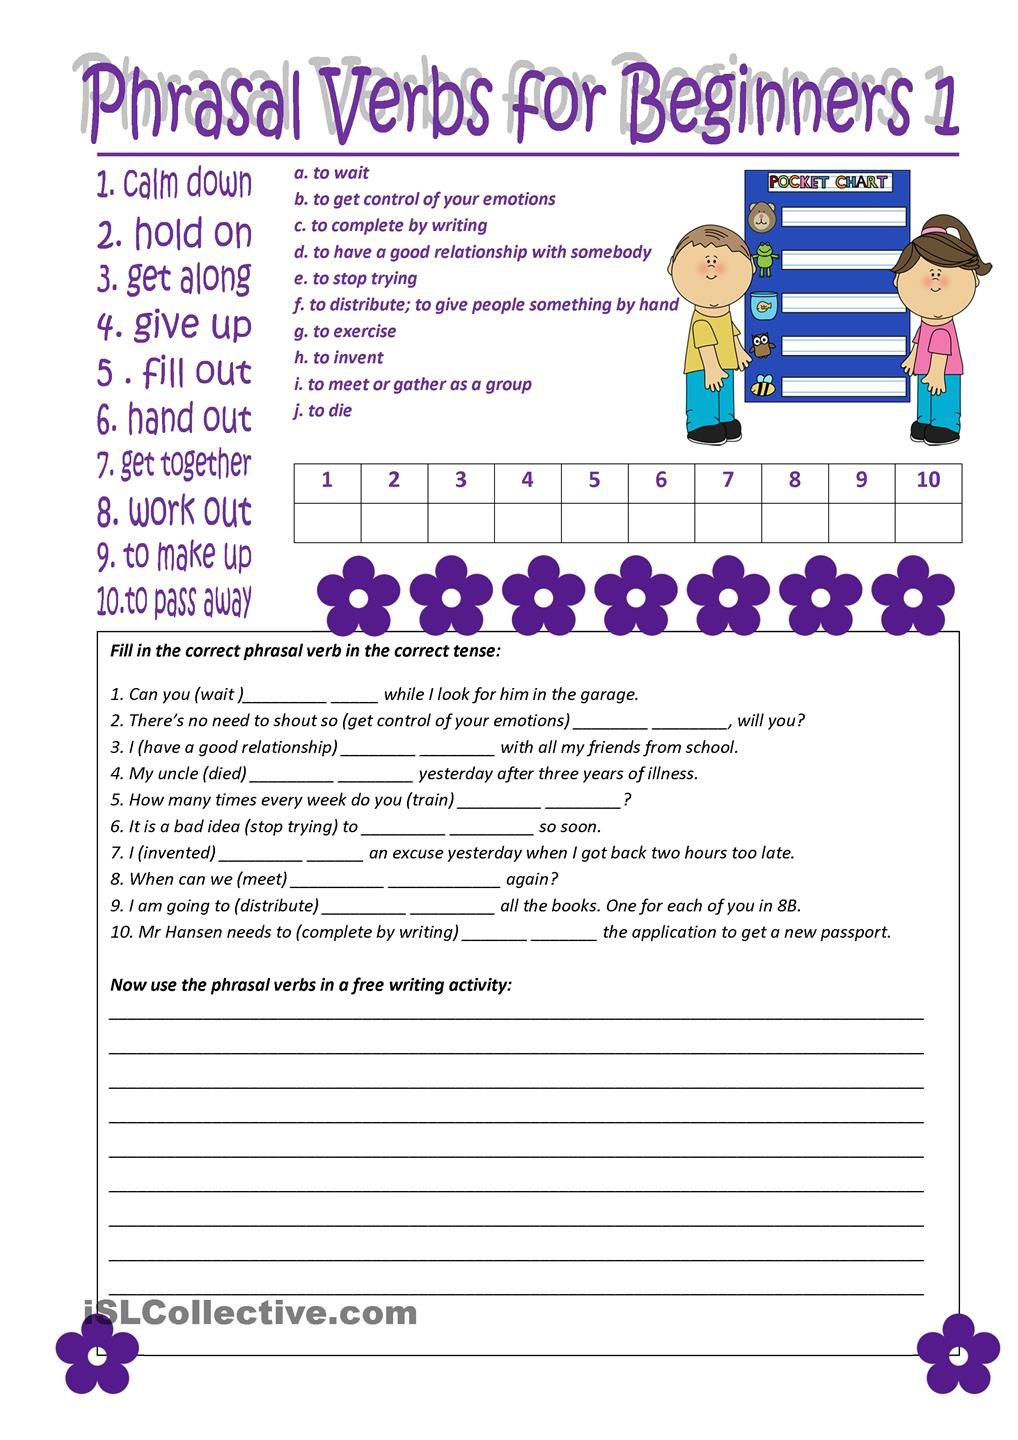 Worksheets Esl Worksheets For Beginners phrasal verbs for beginners 1 english learning kids worksheet free esl printable worksheets made by teachers